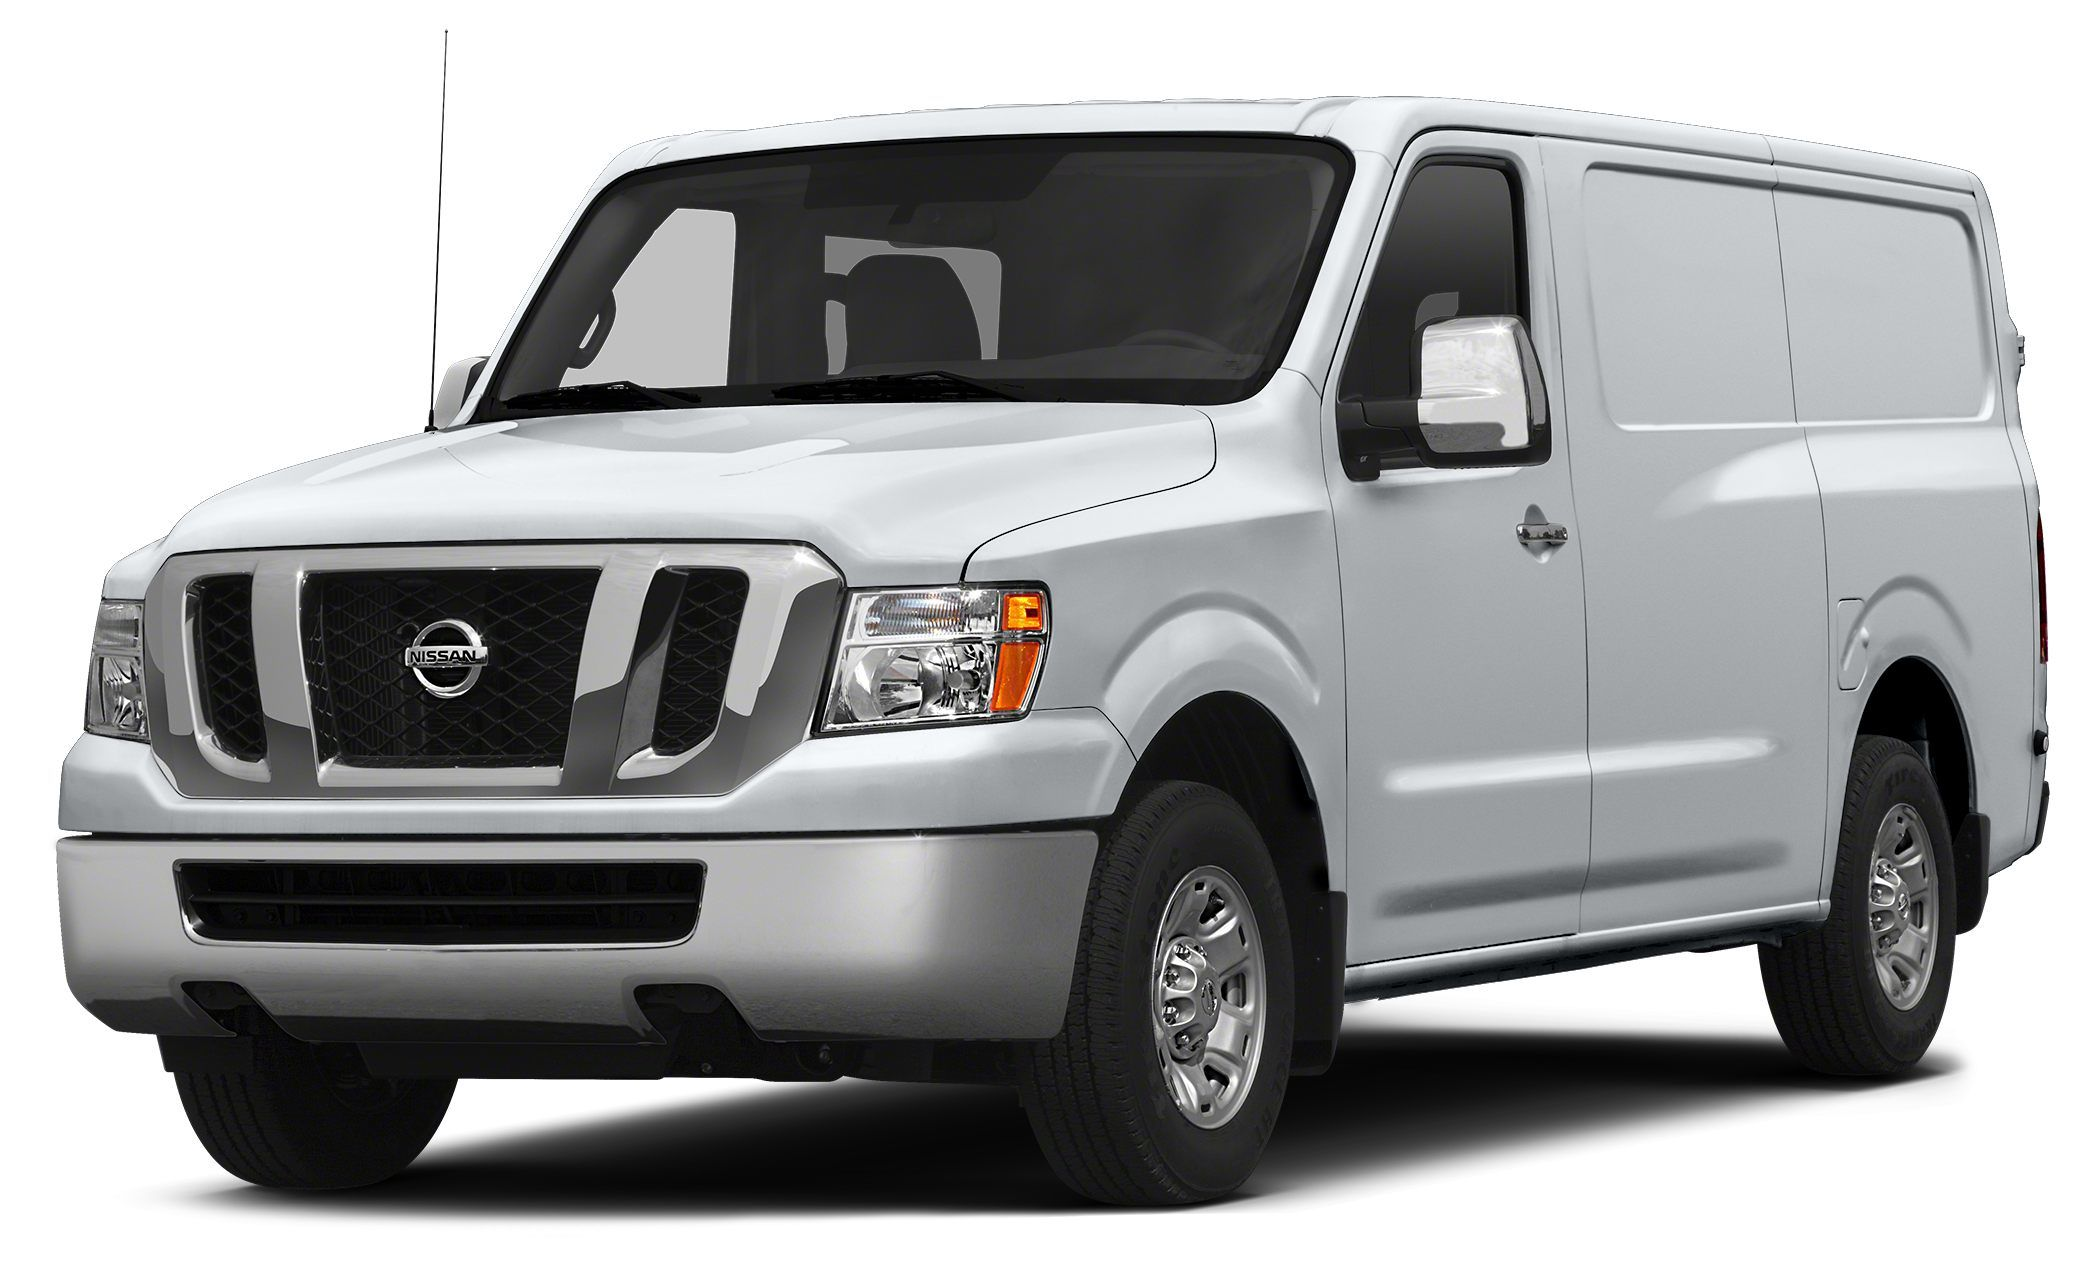 2016 cargo van reviews mercedes ford ram nissan movers delivery service haul moving. Black Bedroom Furniture Sets. Home Design Ideas